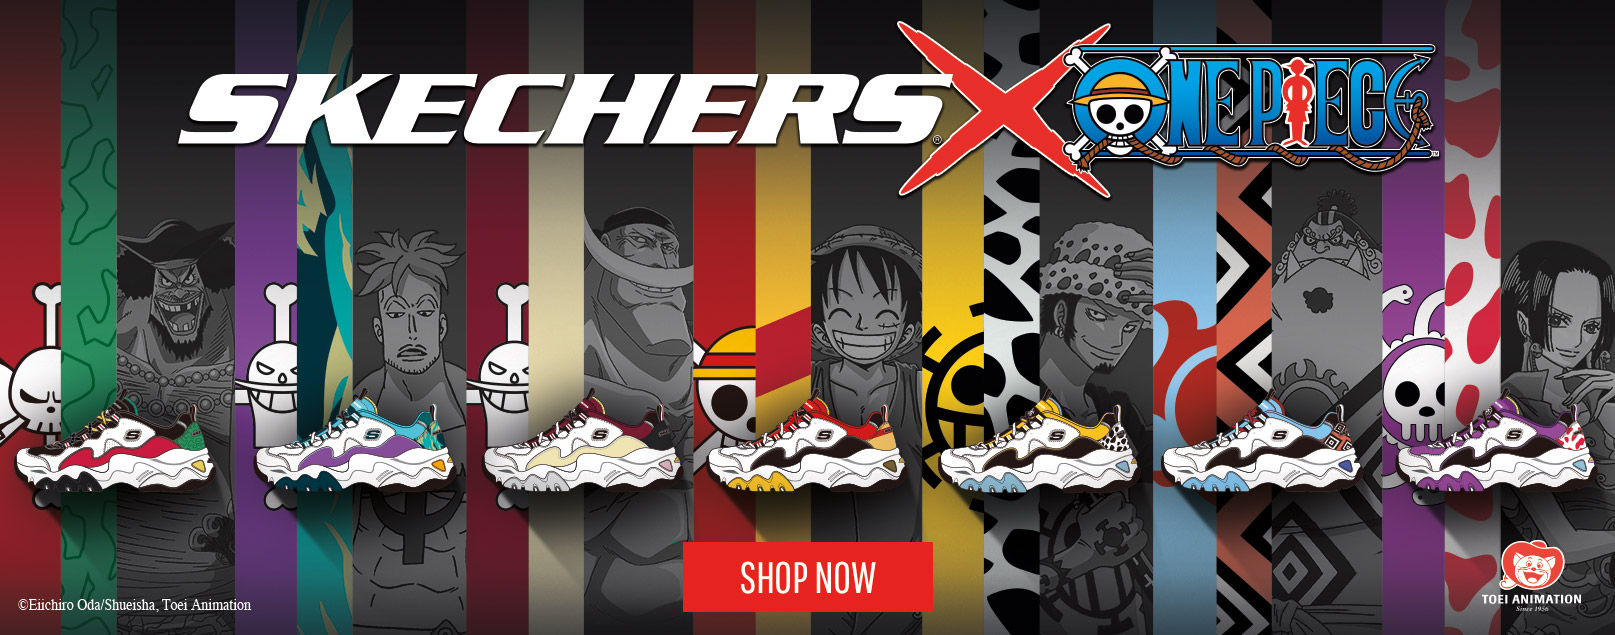 The exciting adventures of Monkey D. Luffy continue in the Skechers D Lites  x 2f7a69ca4